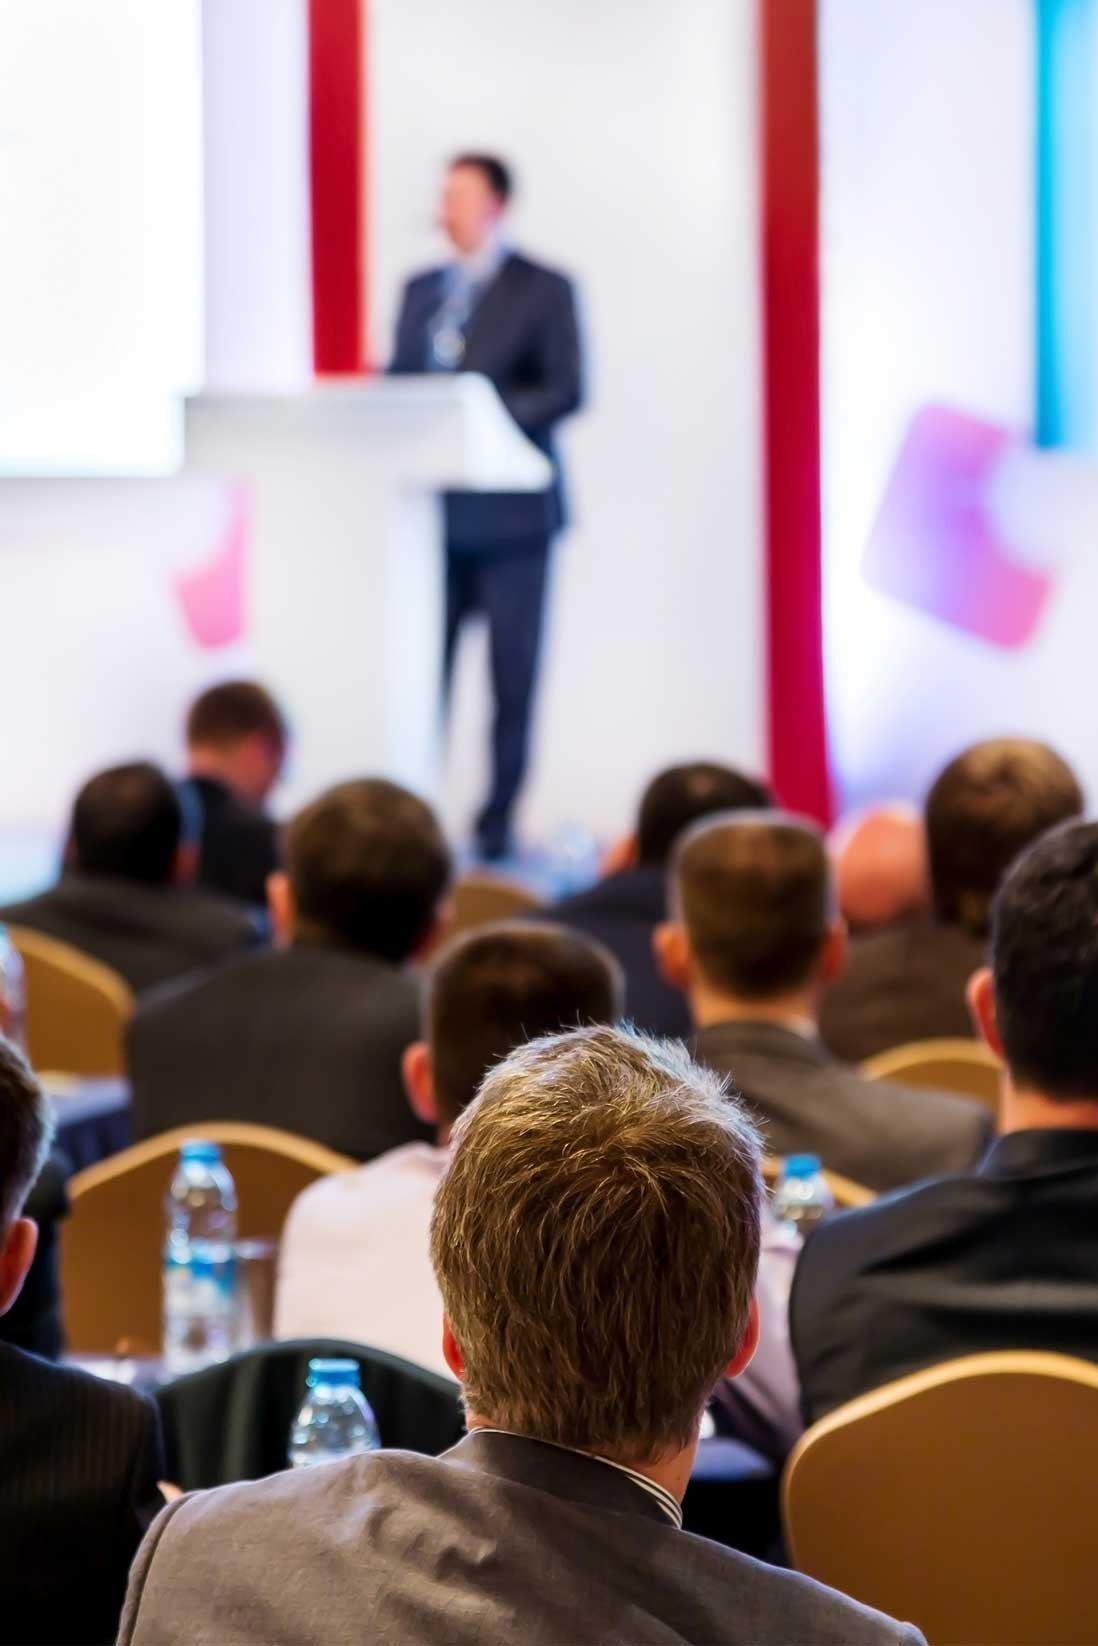 Image of a croud at a conference with speaker blurred in the distance